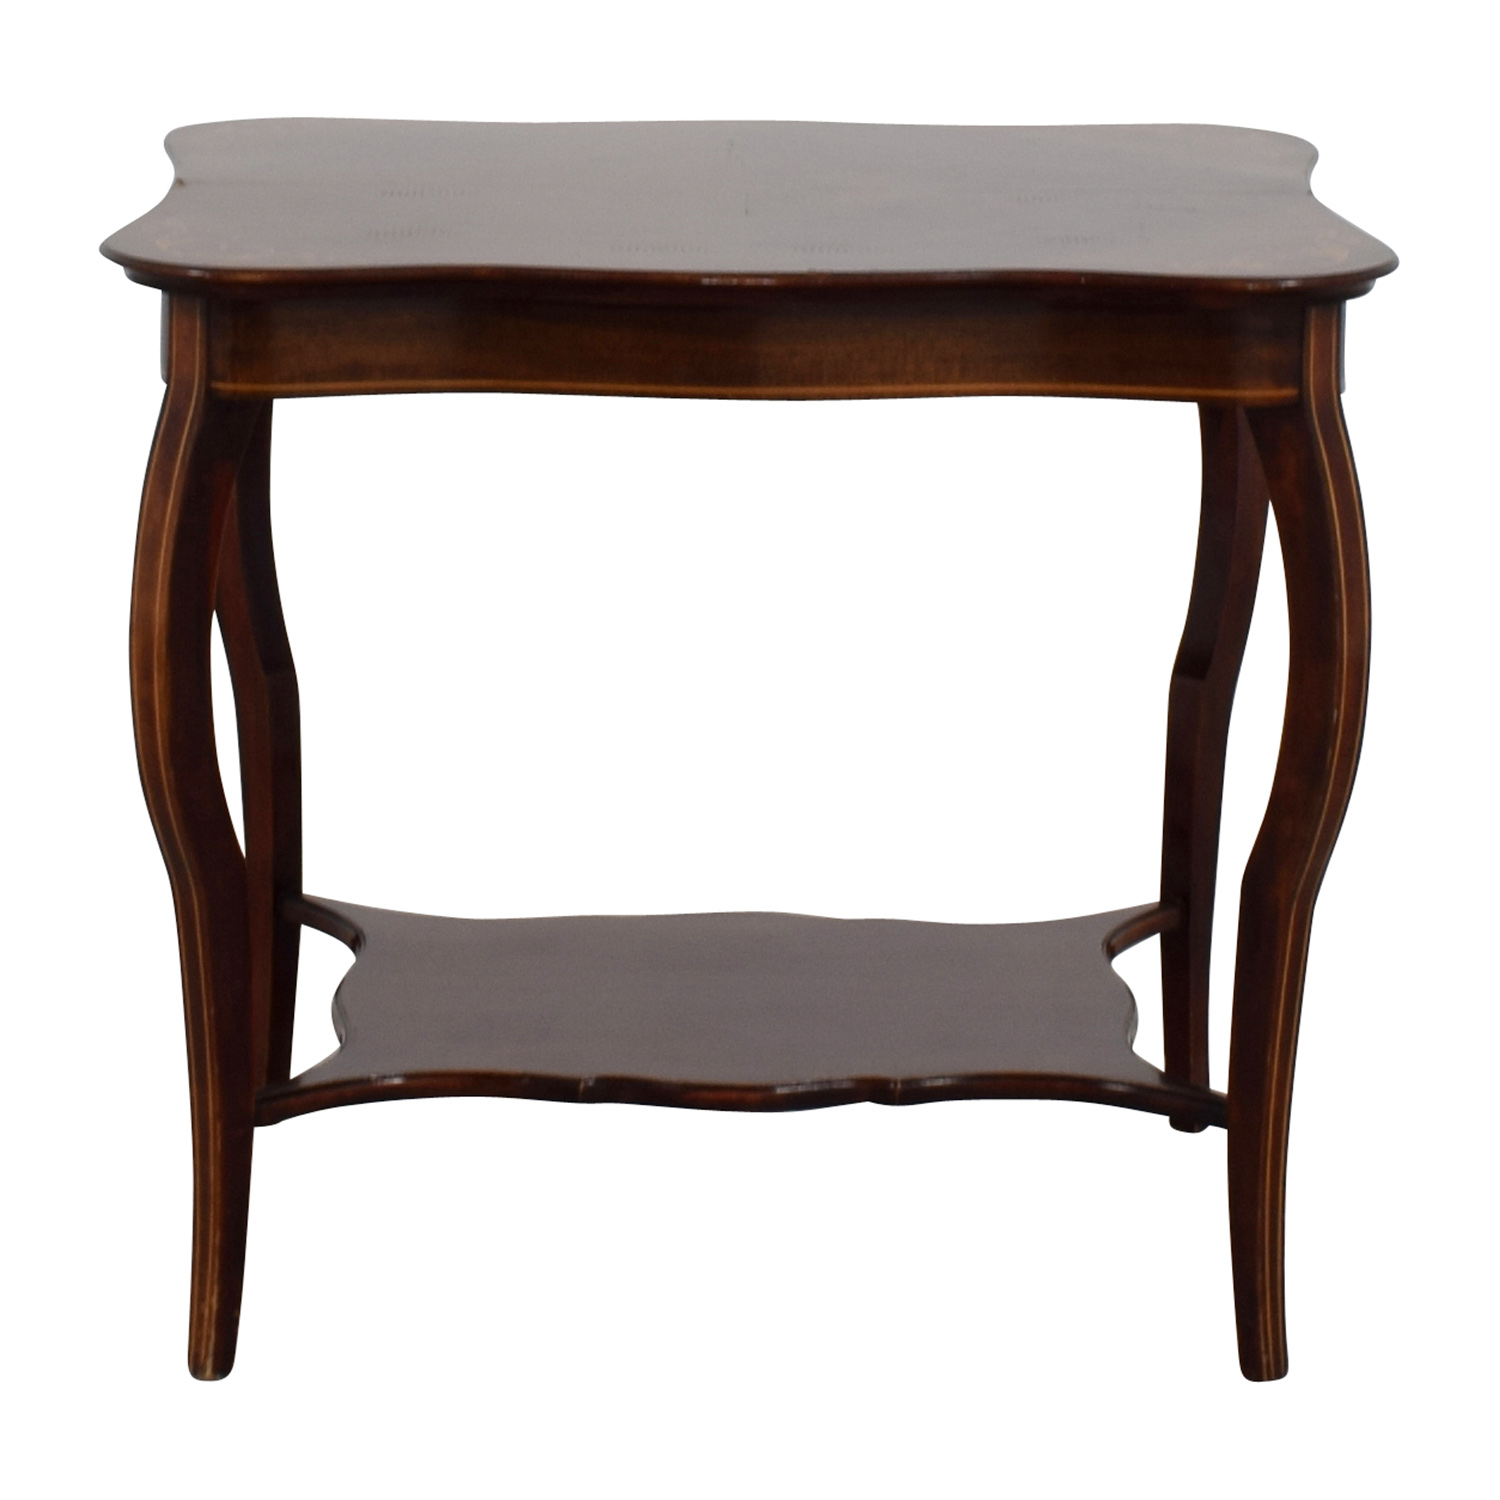 RJ Horner Antique End Table with Shelf / Tables